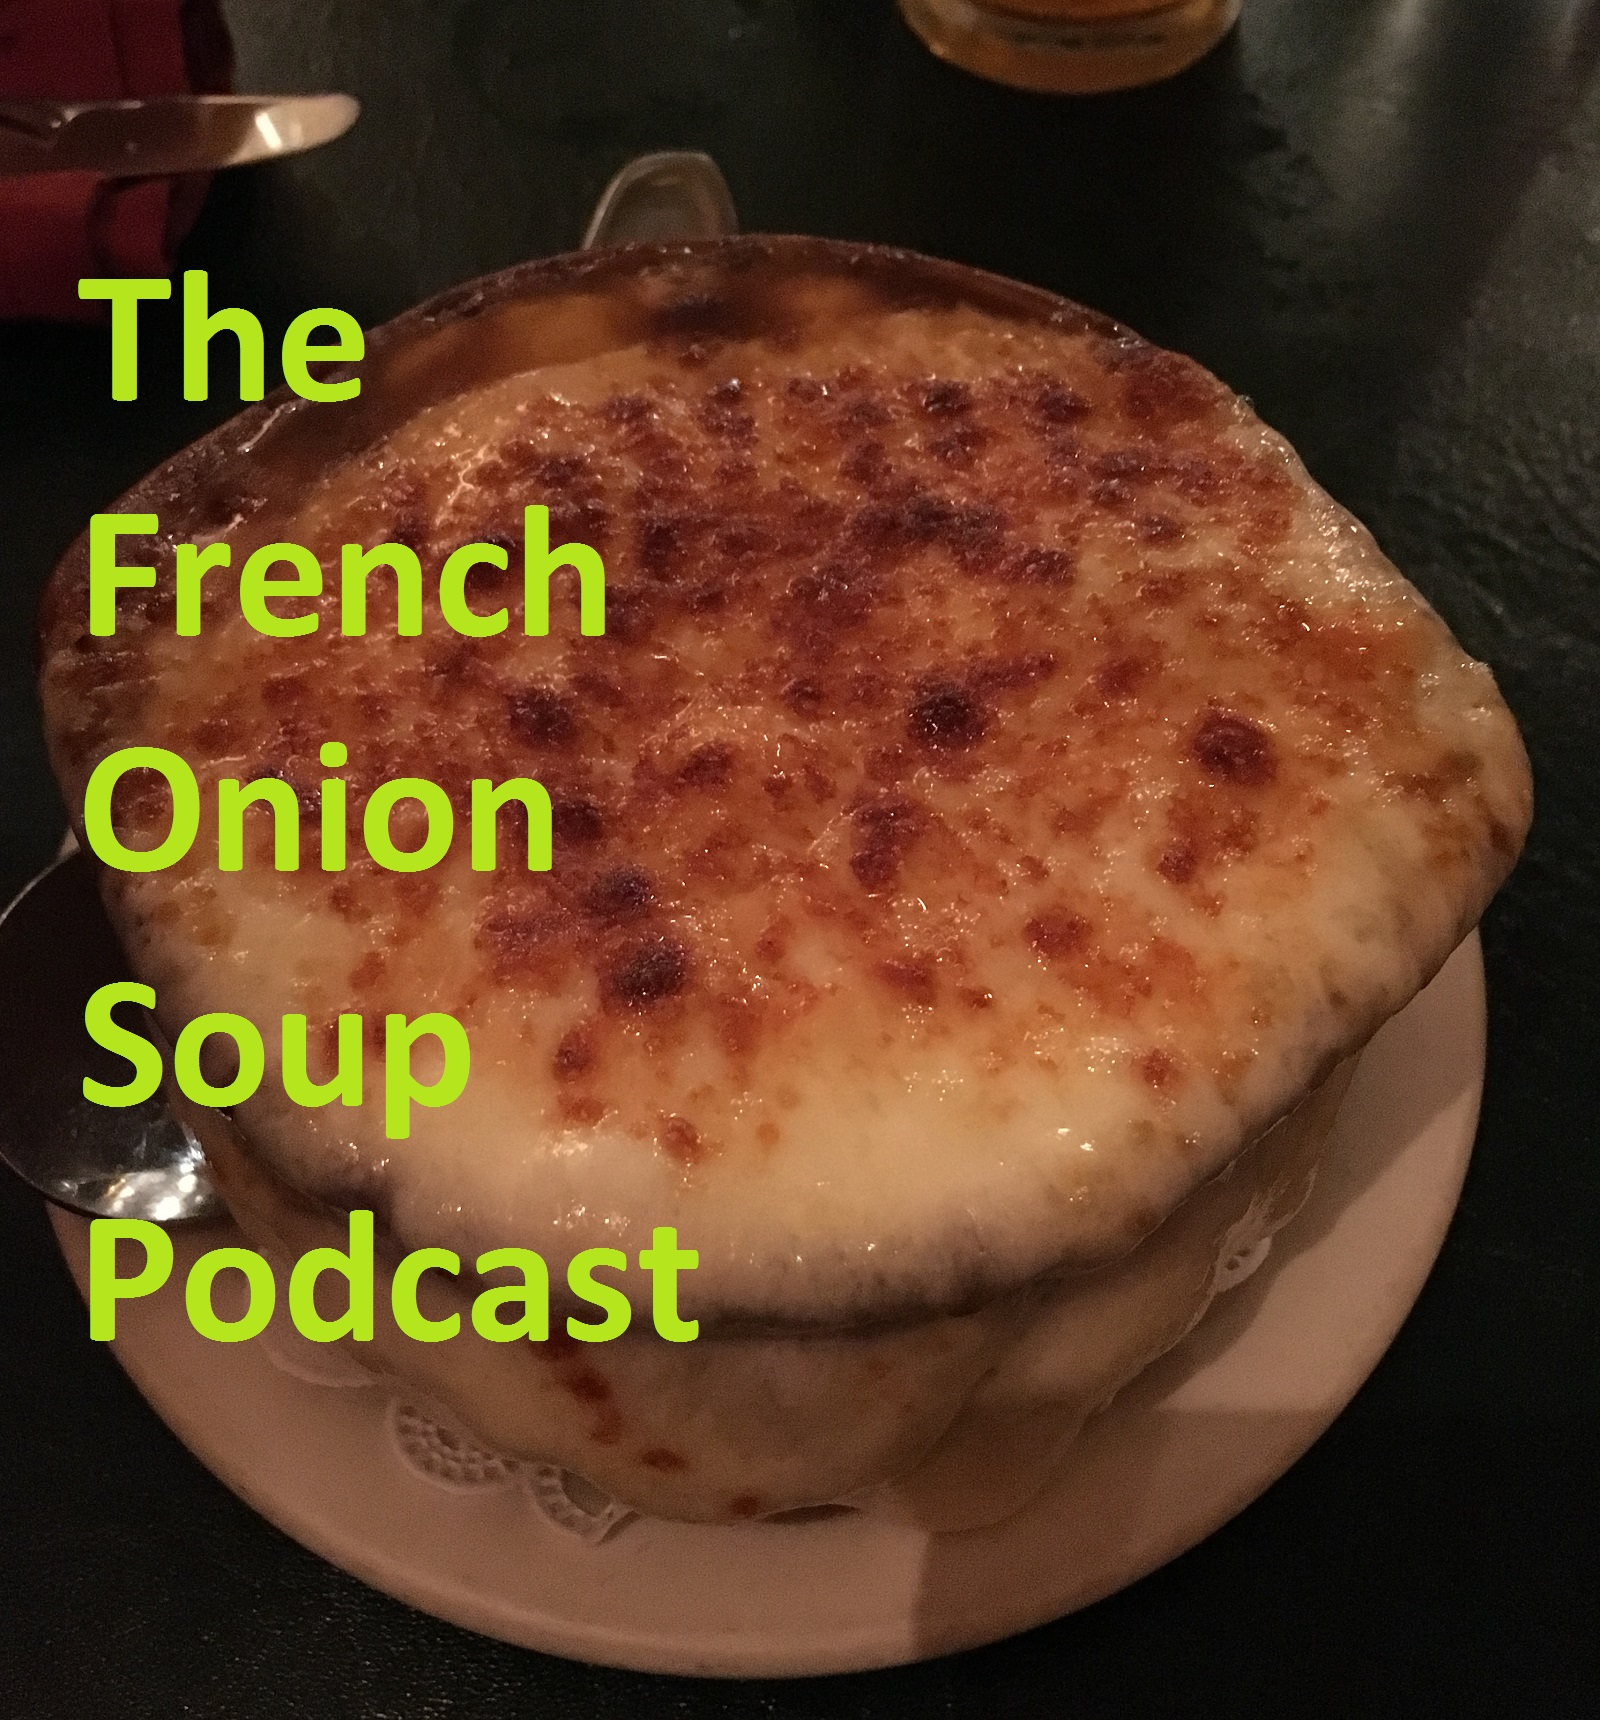 The French Onion Soup Podcast